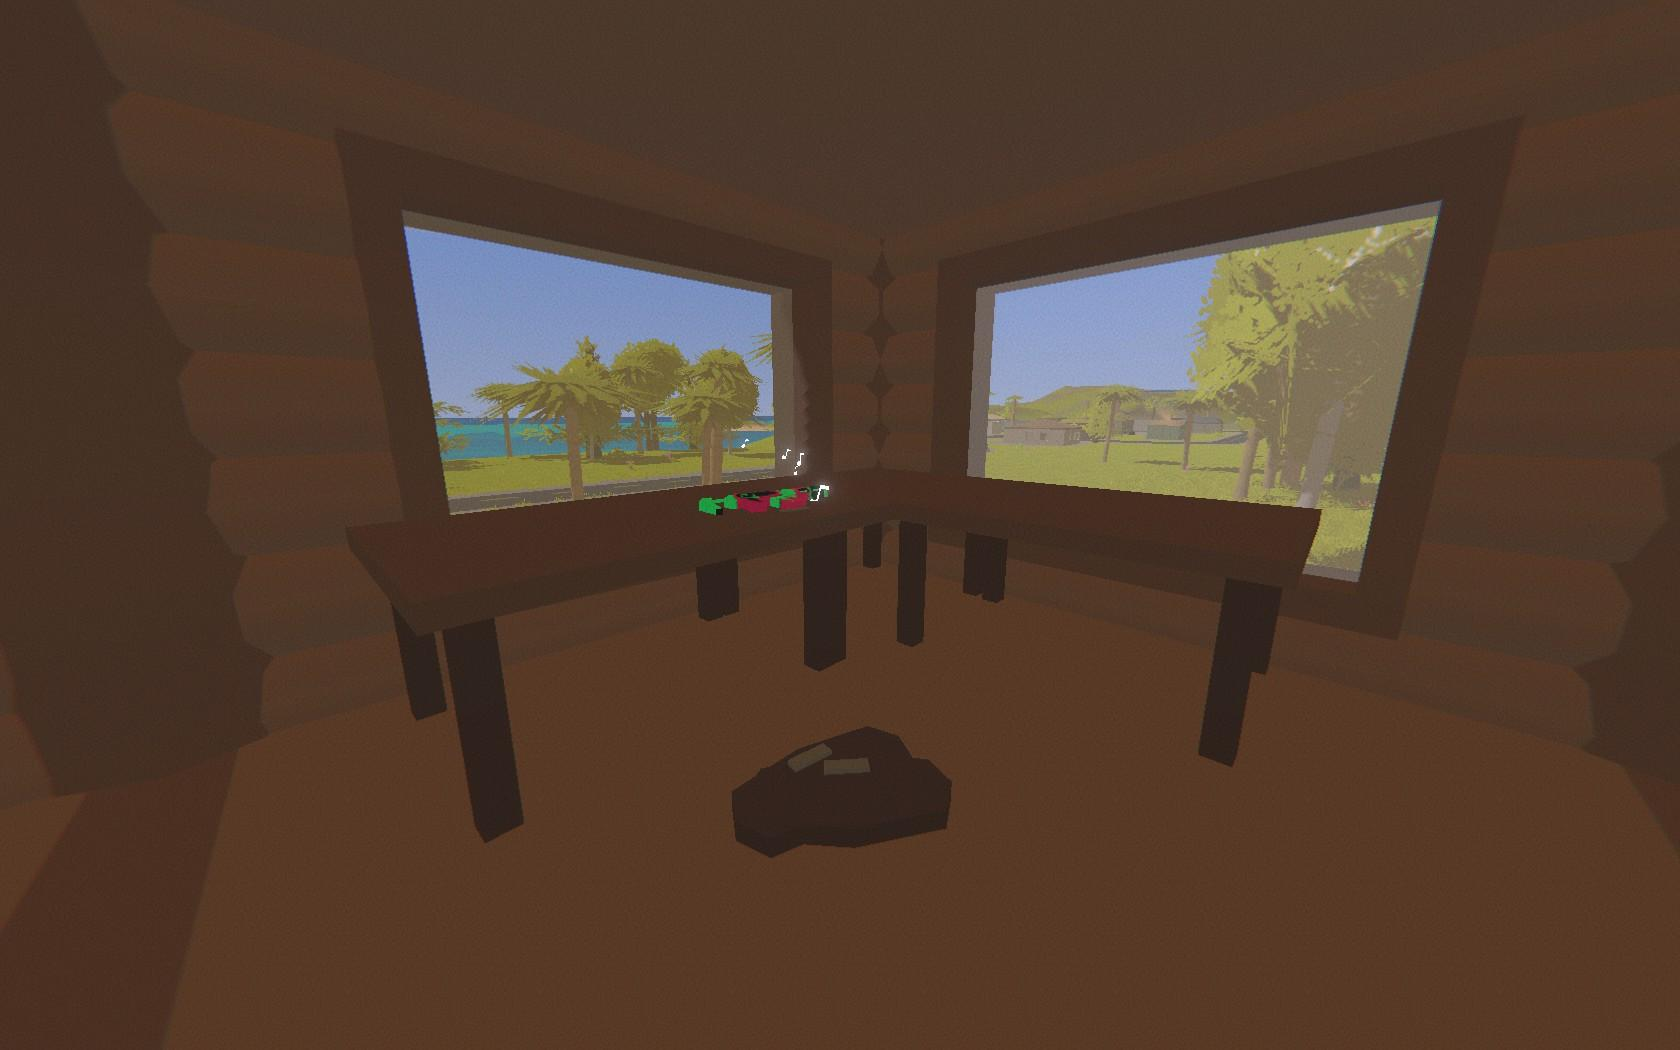 Unturned - Beginner's Guide